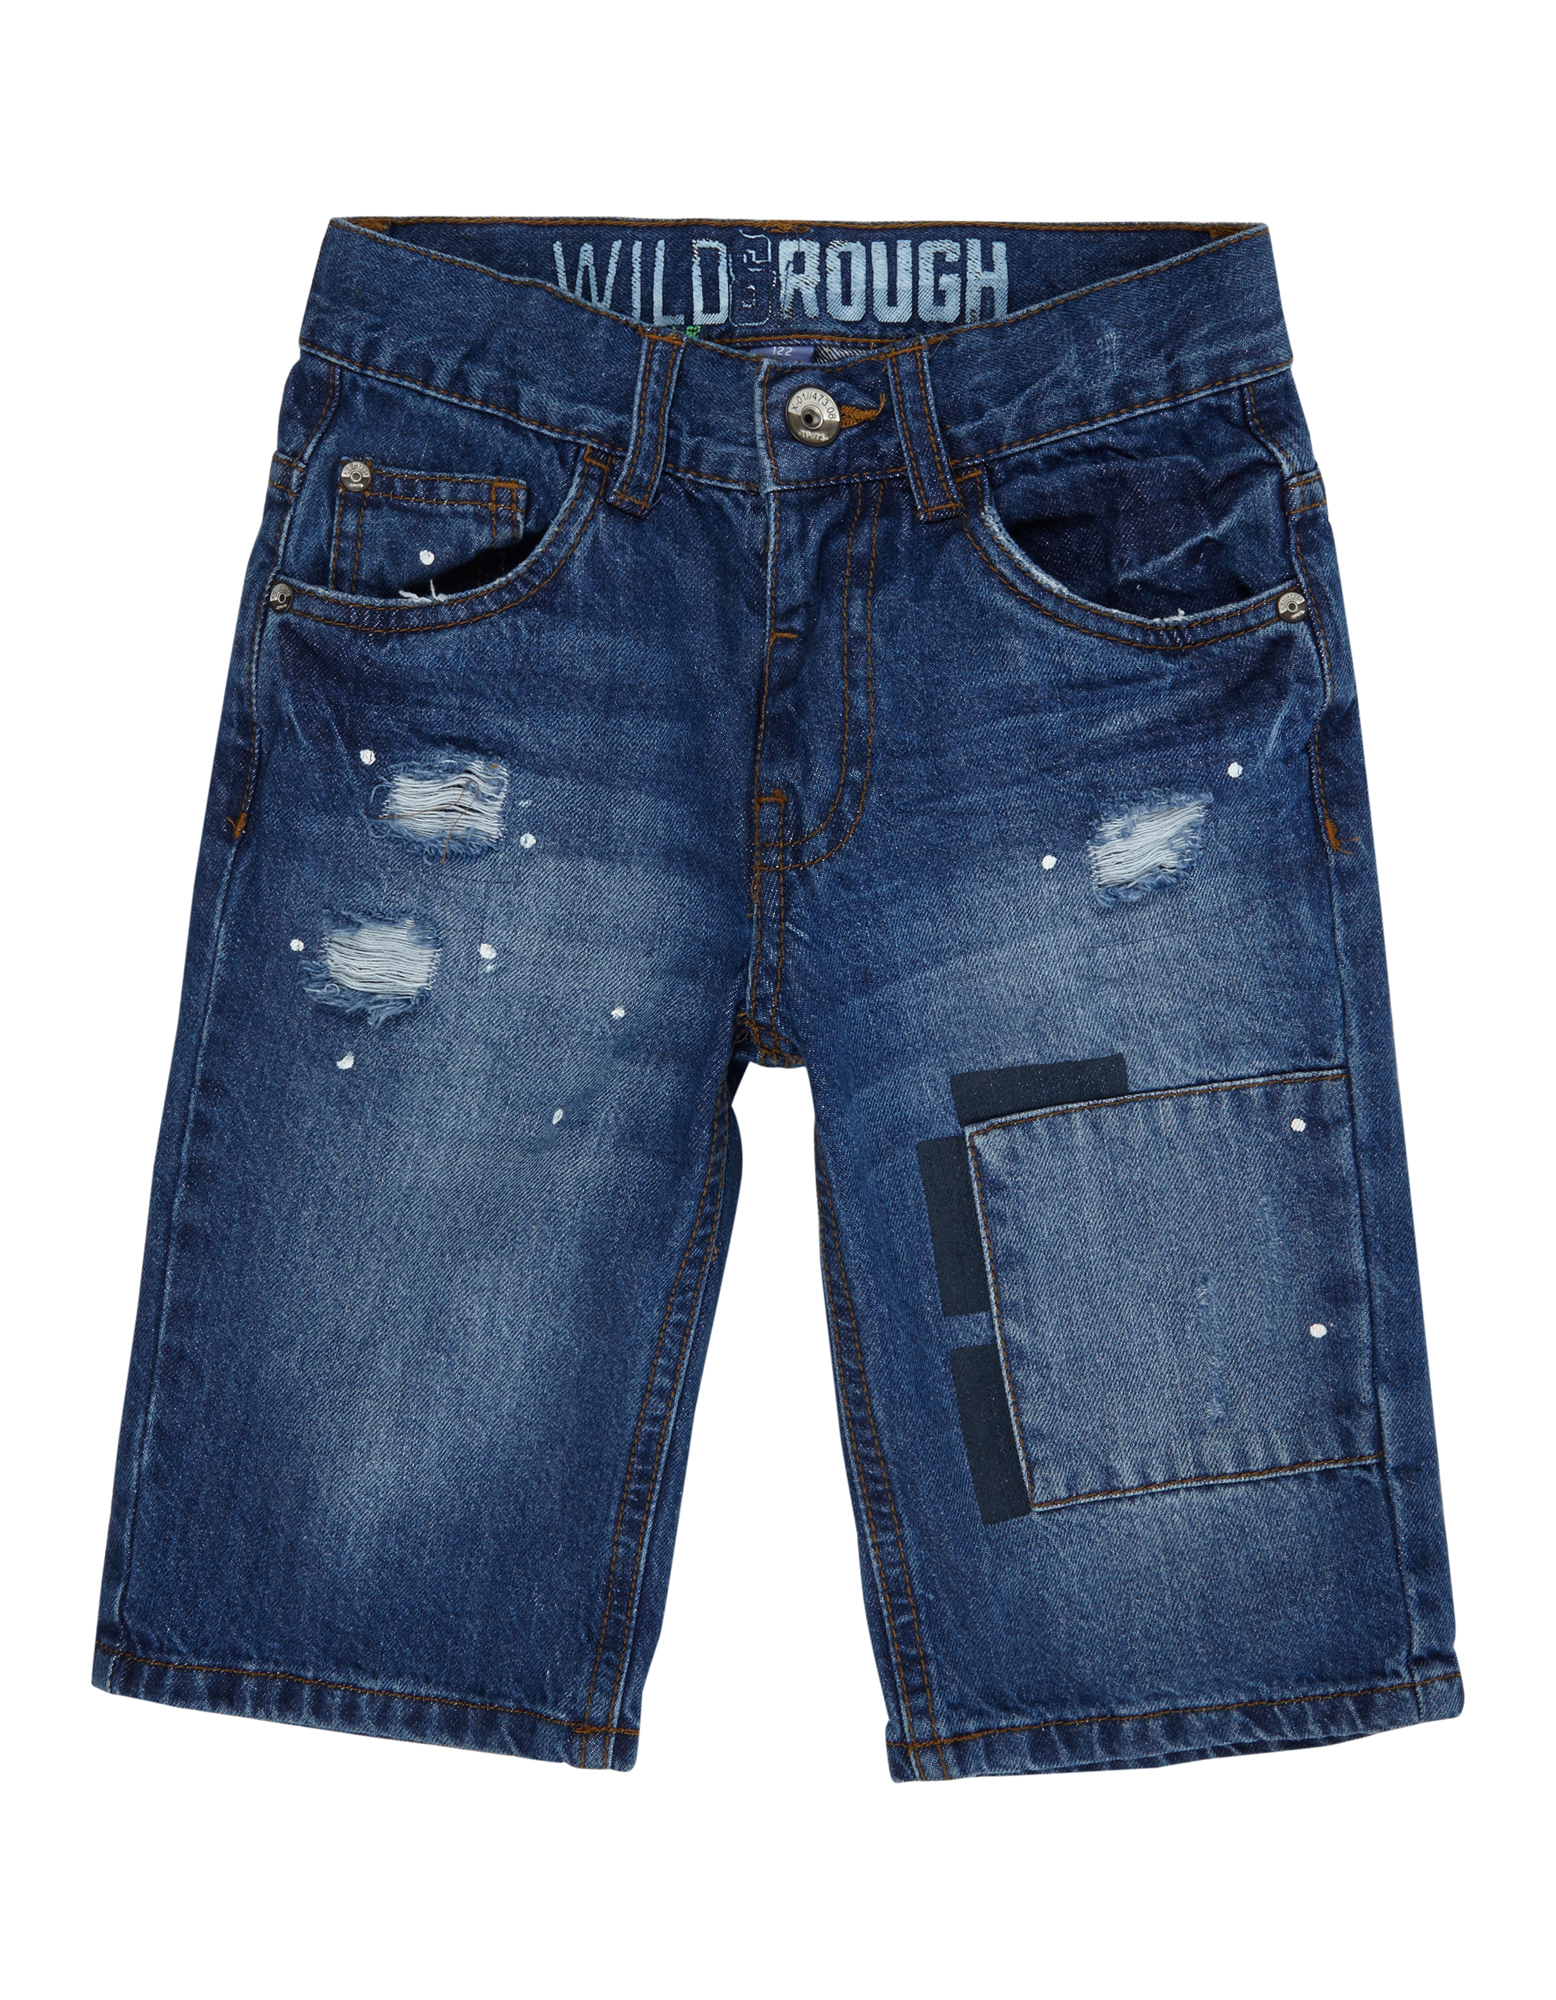 Jungen 5-Pocket-Jeansshorts im Destroyed Look  | 81458595830505